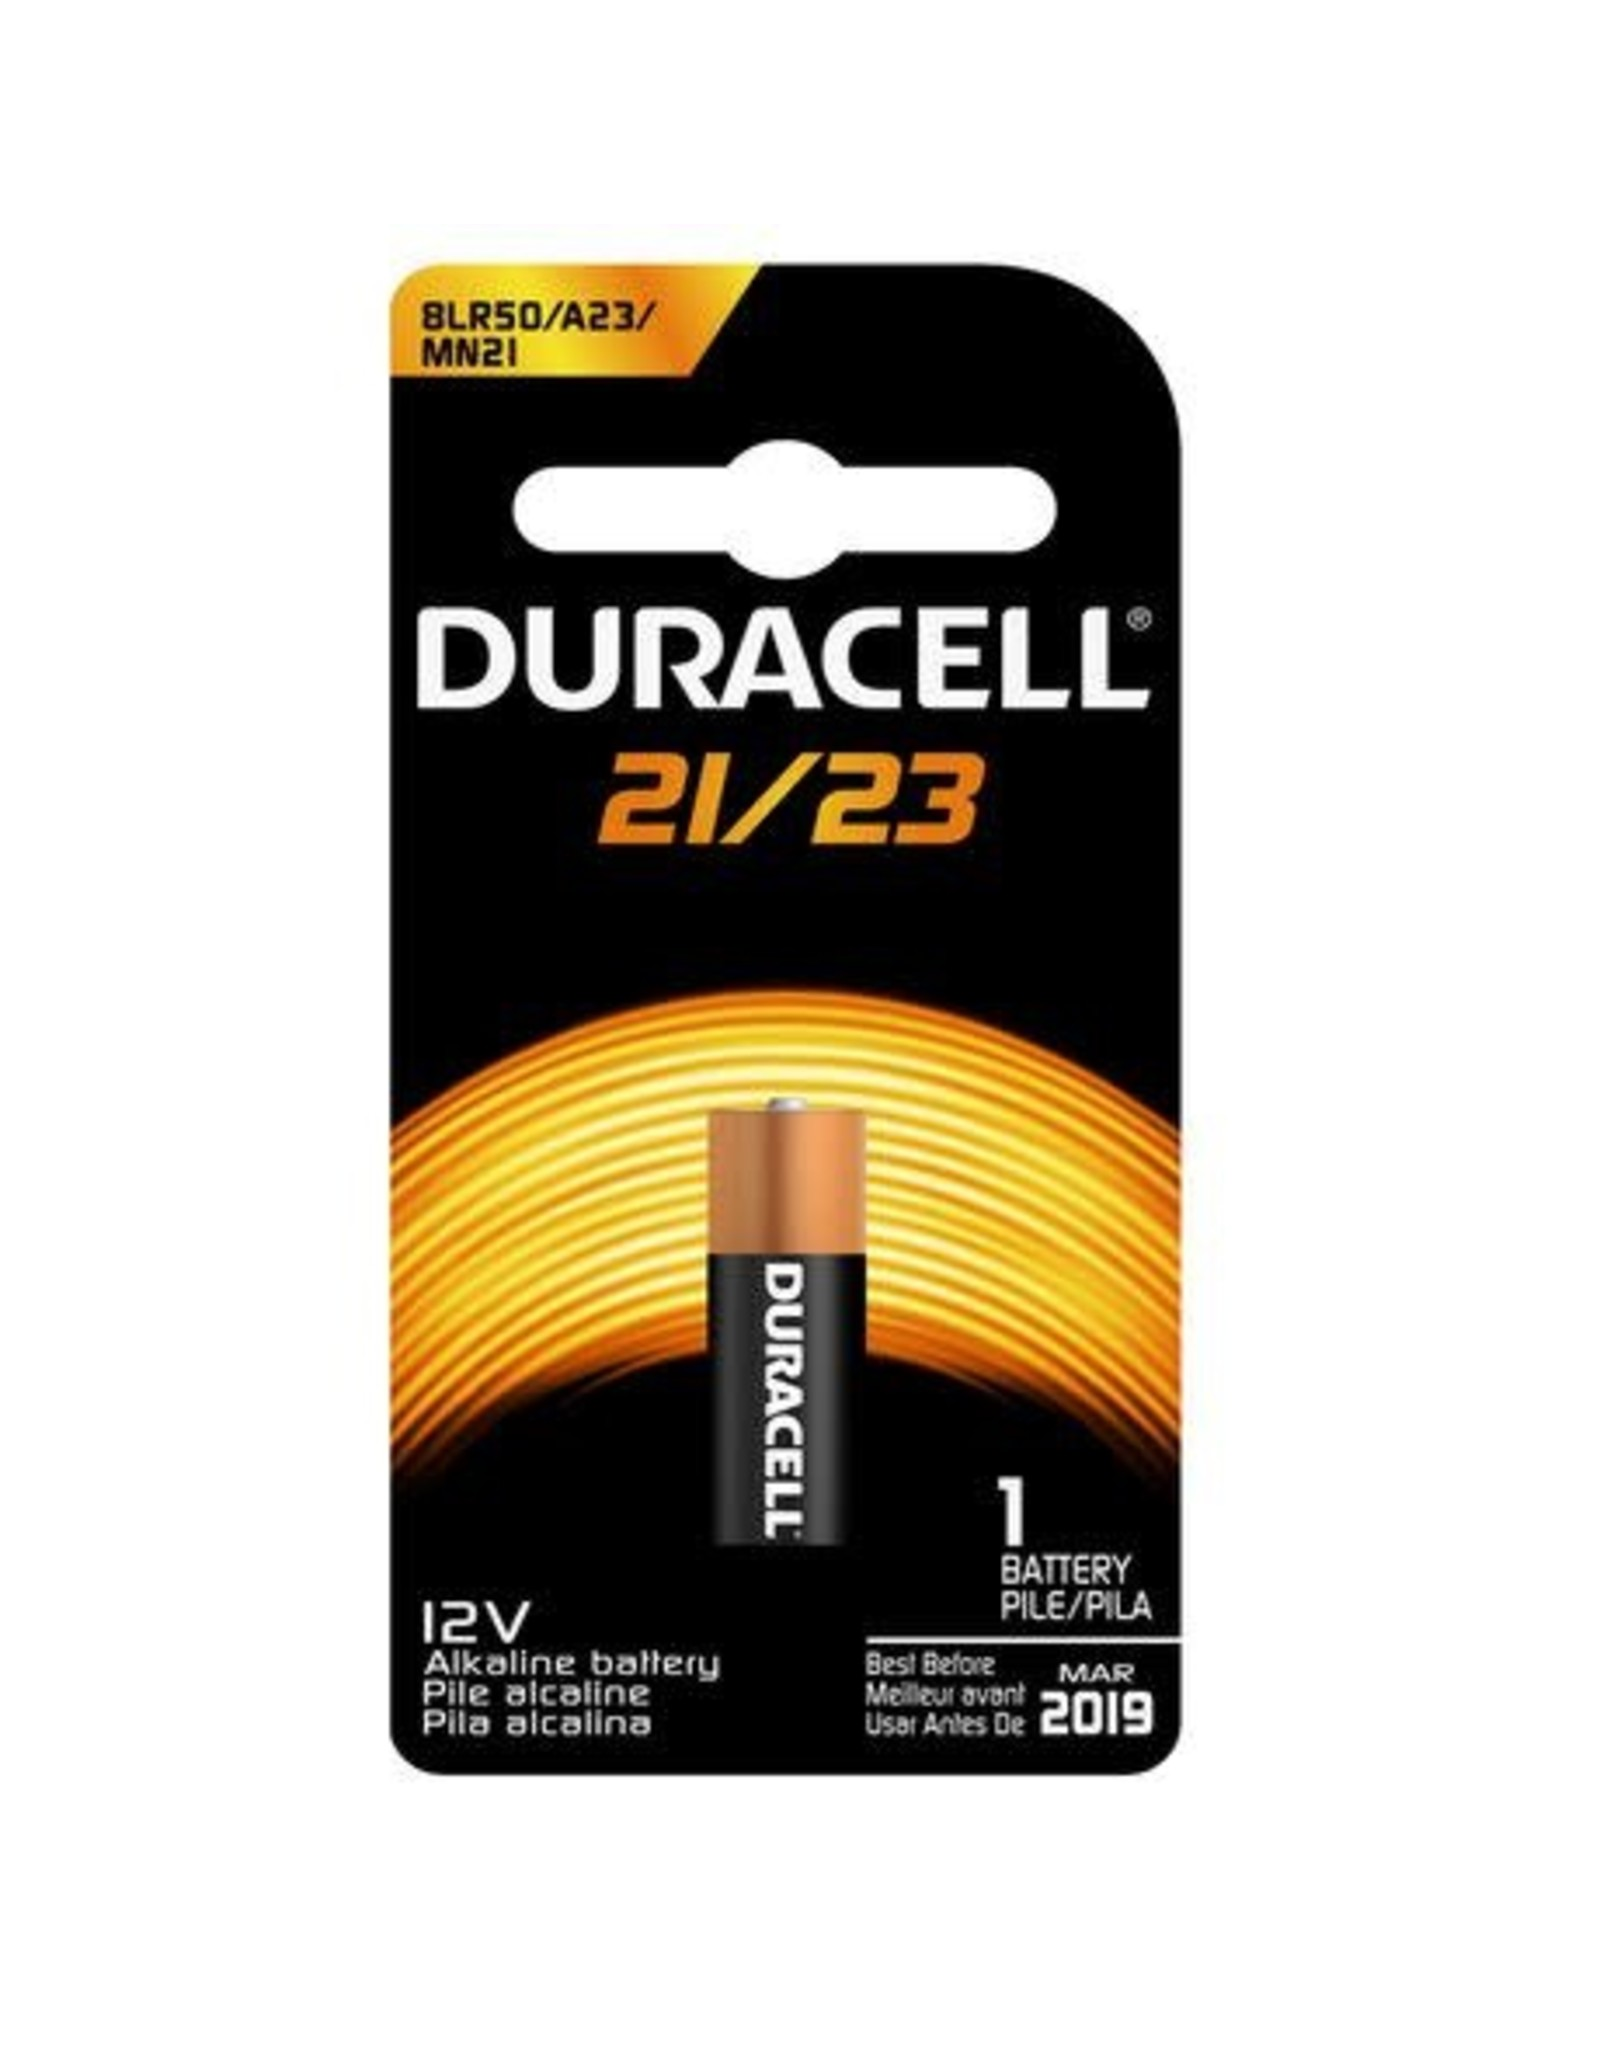 Duracell Canada Inc. Duracell MN21/23 12V Coppertop Alkaline Battery 1 Pack